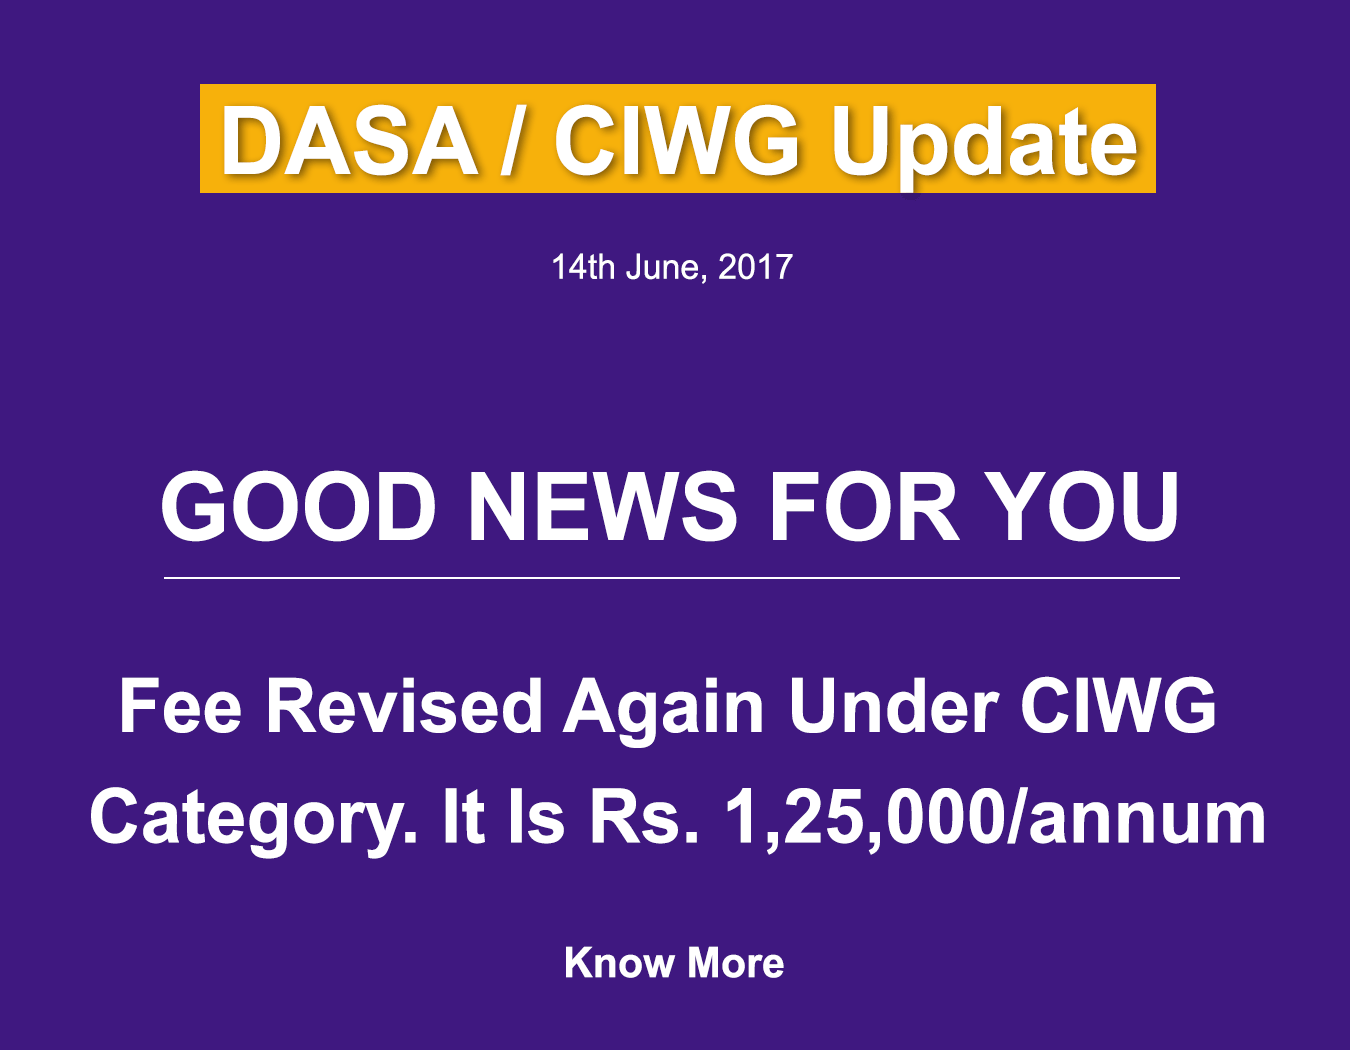 CIWG Fee Structure Revised Again